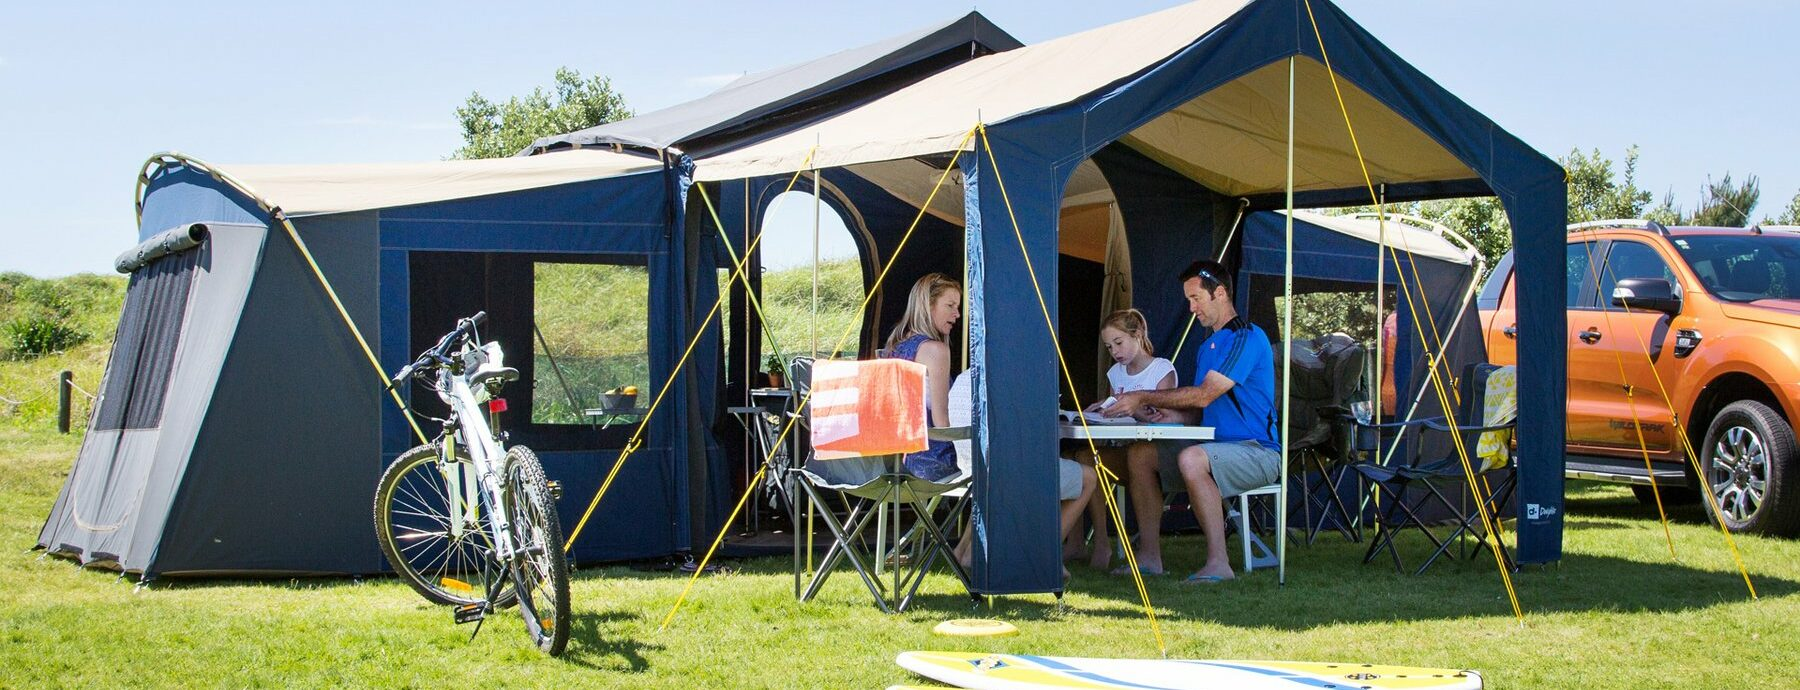 Non Powered Site for Tent, Caravans and Motorhomes